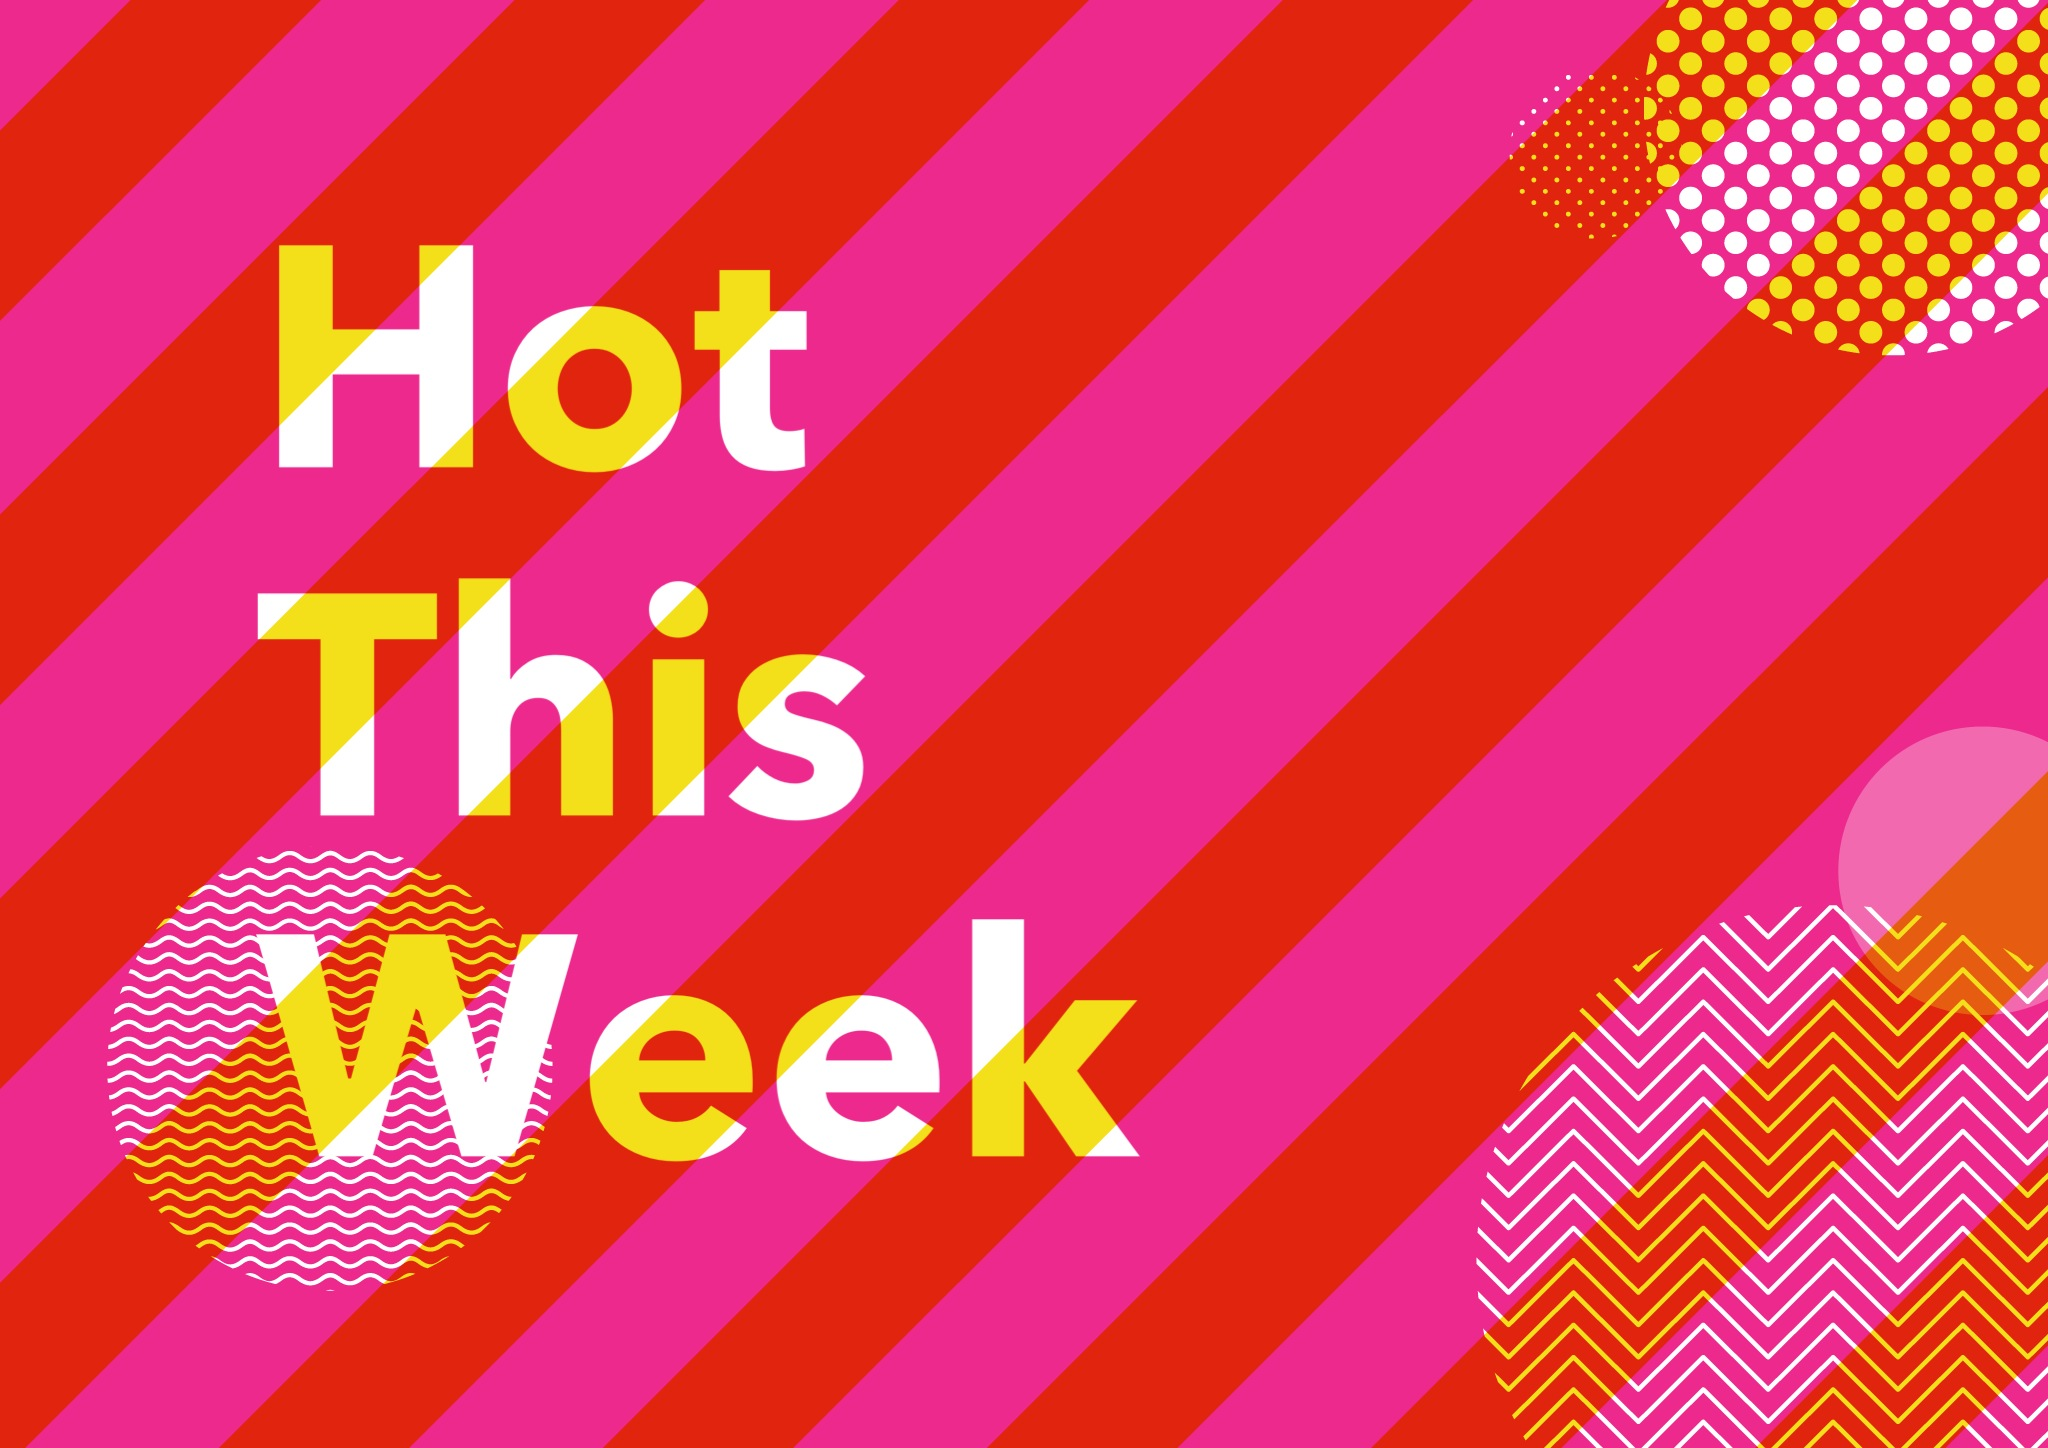 Hot this week